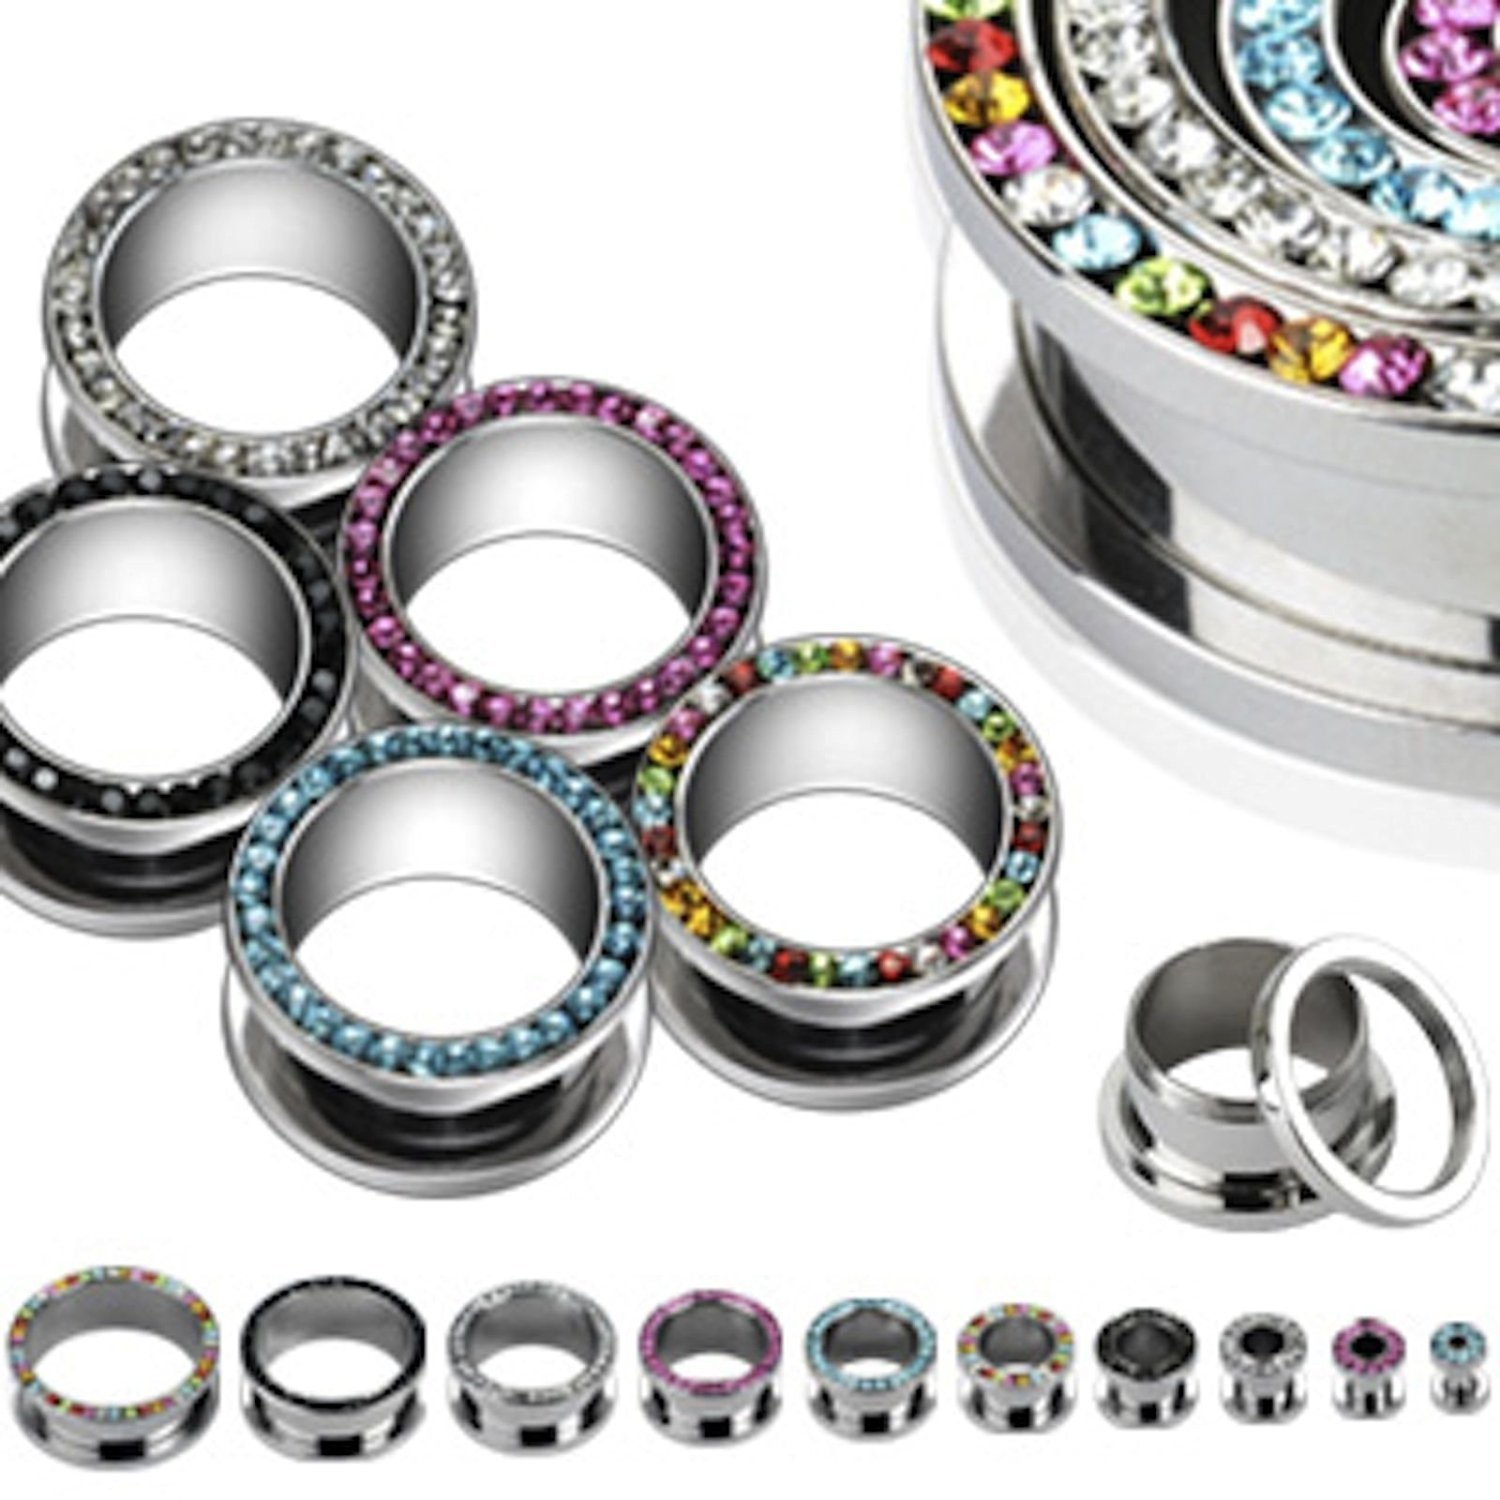 Inspiration Dezigns Multi-Gemmed Rim Up to 2'' 316L Surgical Steel Screw Fit Hollow Tunnels - Sold as Pairs (3/4'' Black)